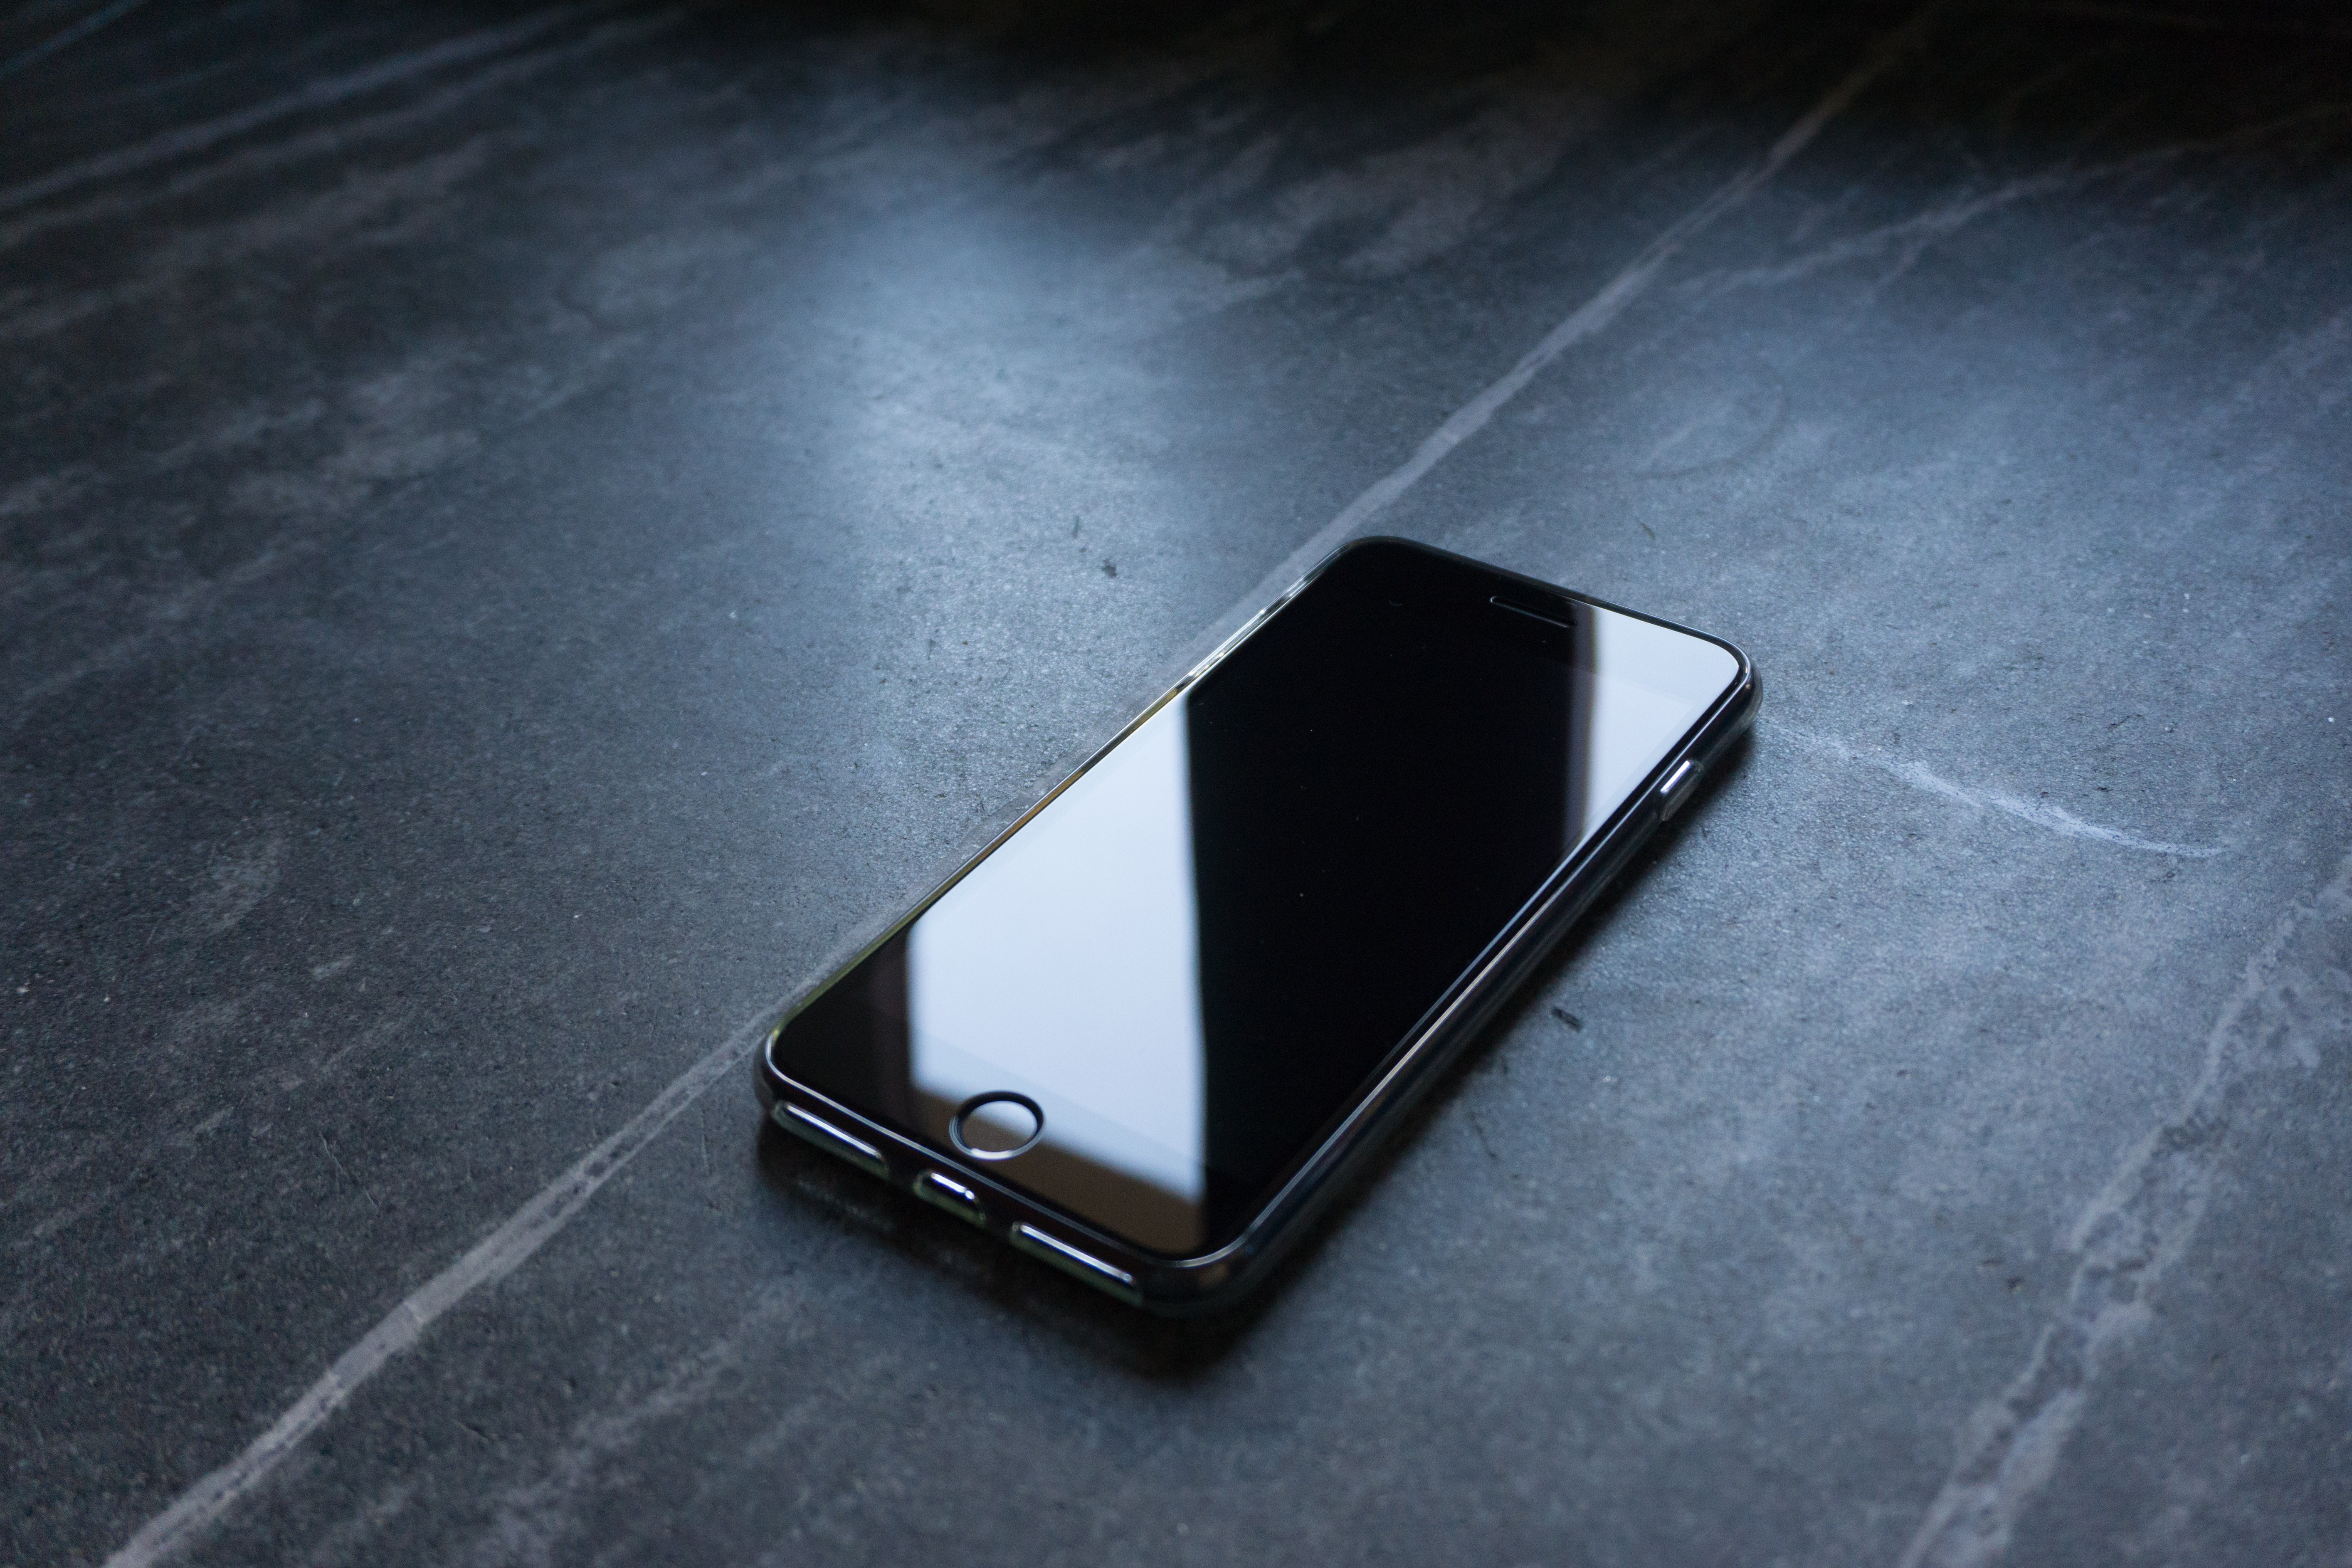 a mobile phone on the floor